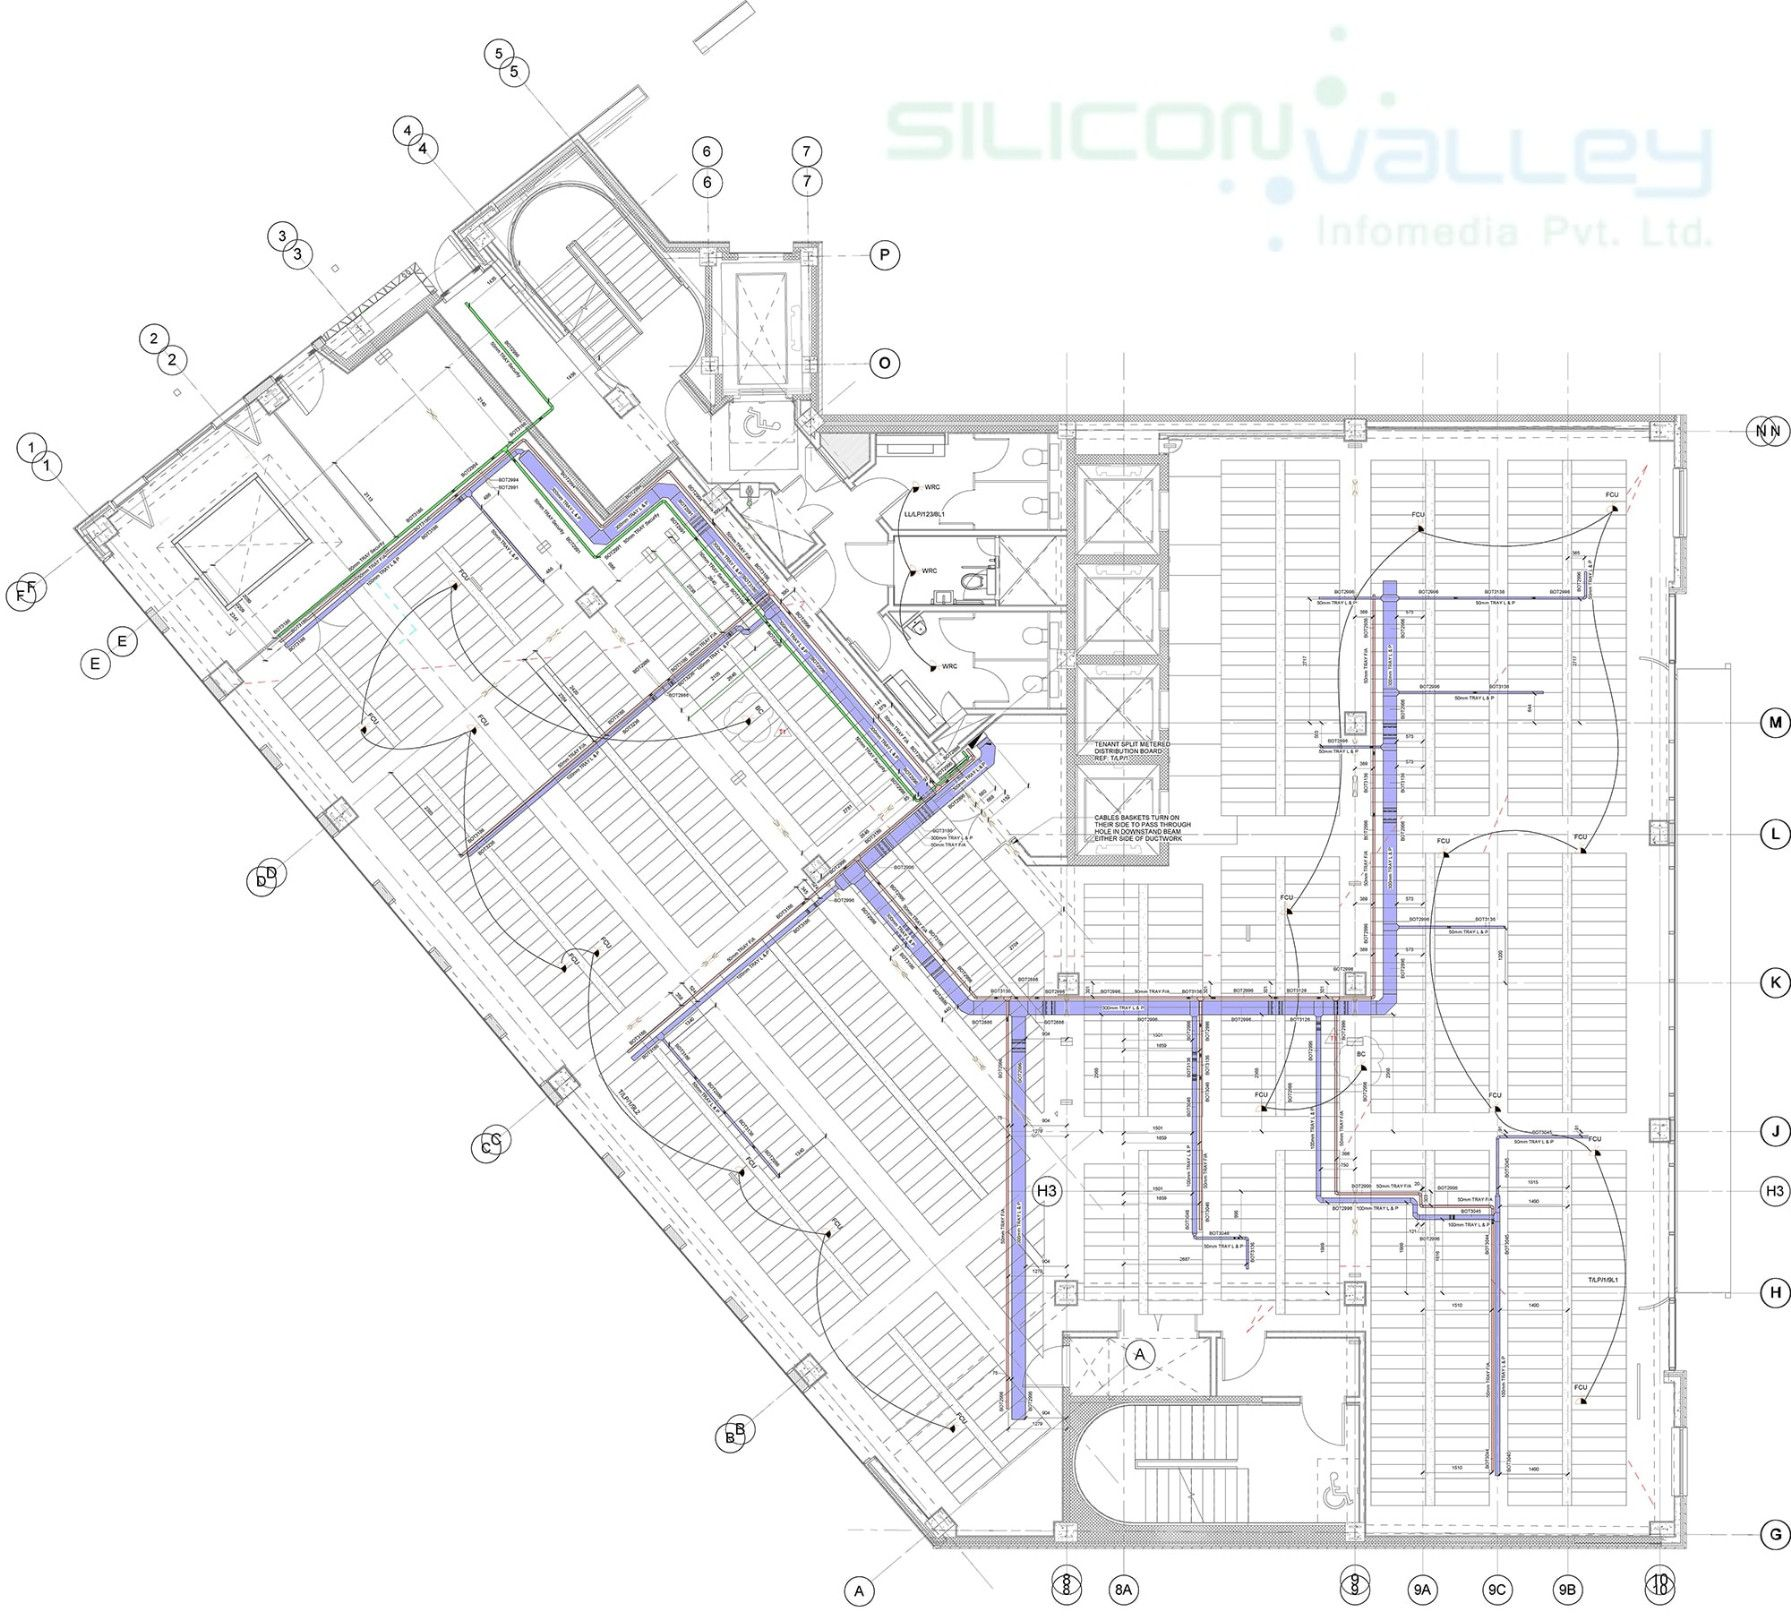 medium resolution of  silicon info provides mep shop drawing detailing services for